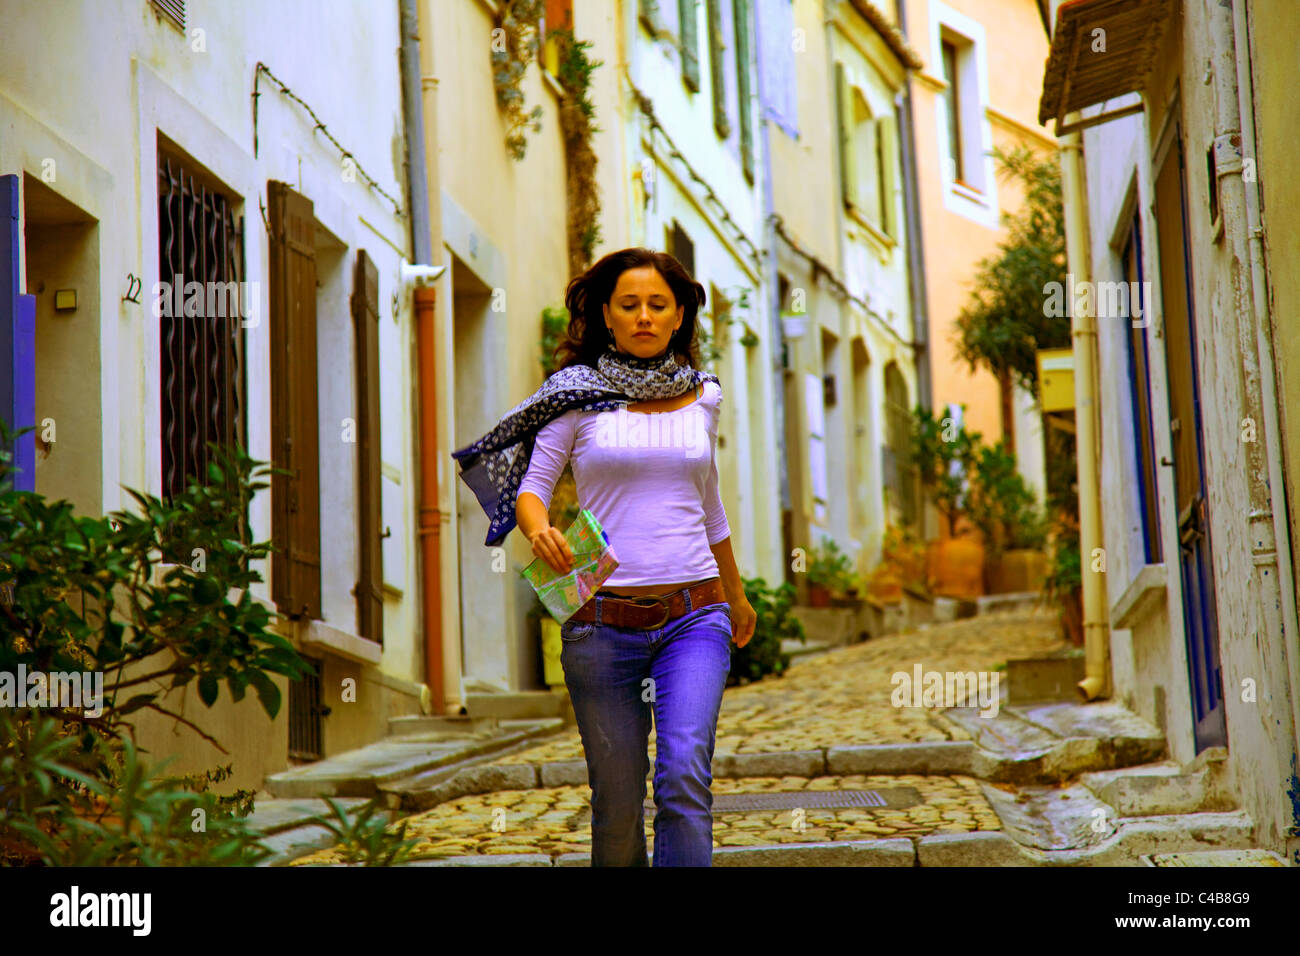 Arles; Bouches du Rhone, France; A young woman walking down the cobbled streets of the Town. MR. Stock Photo